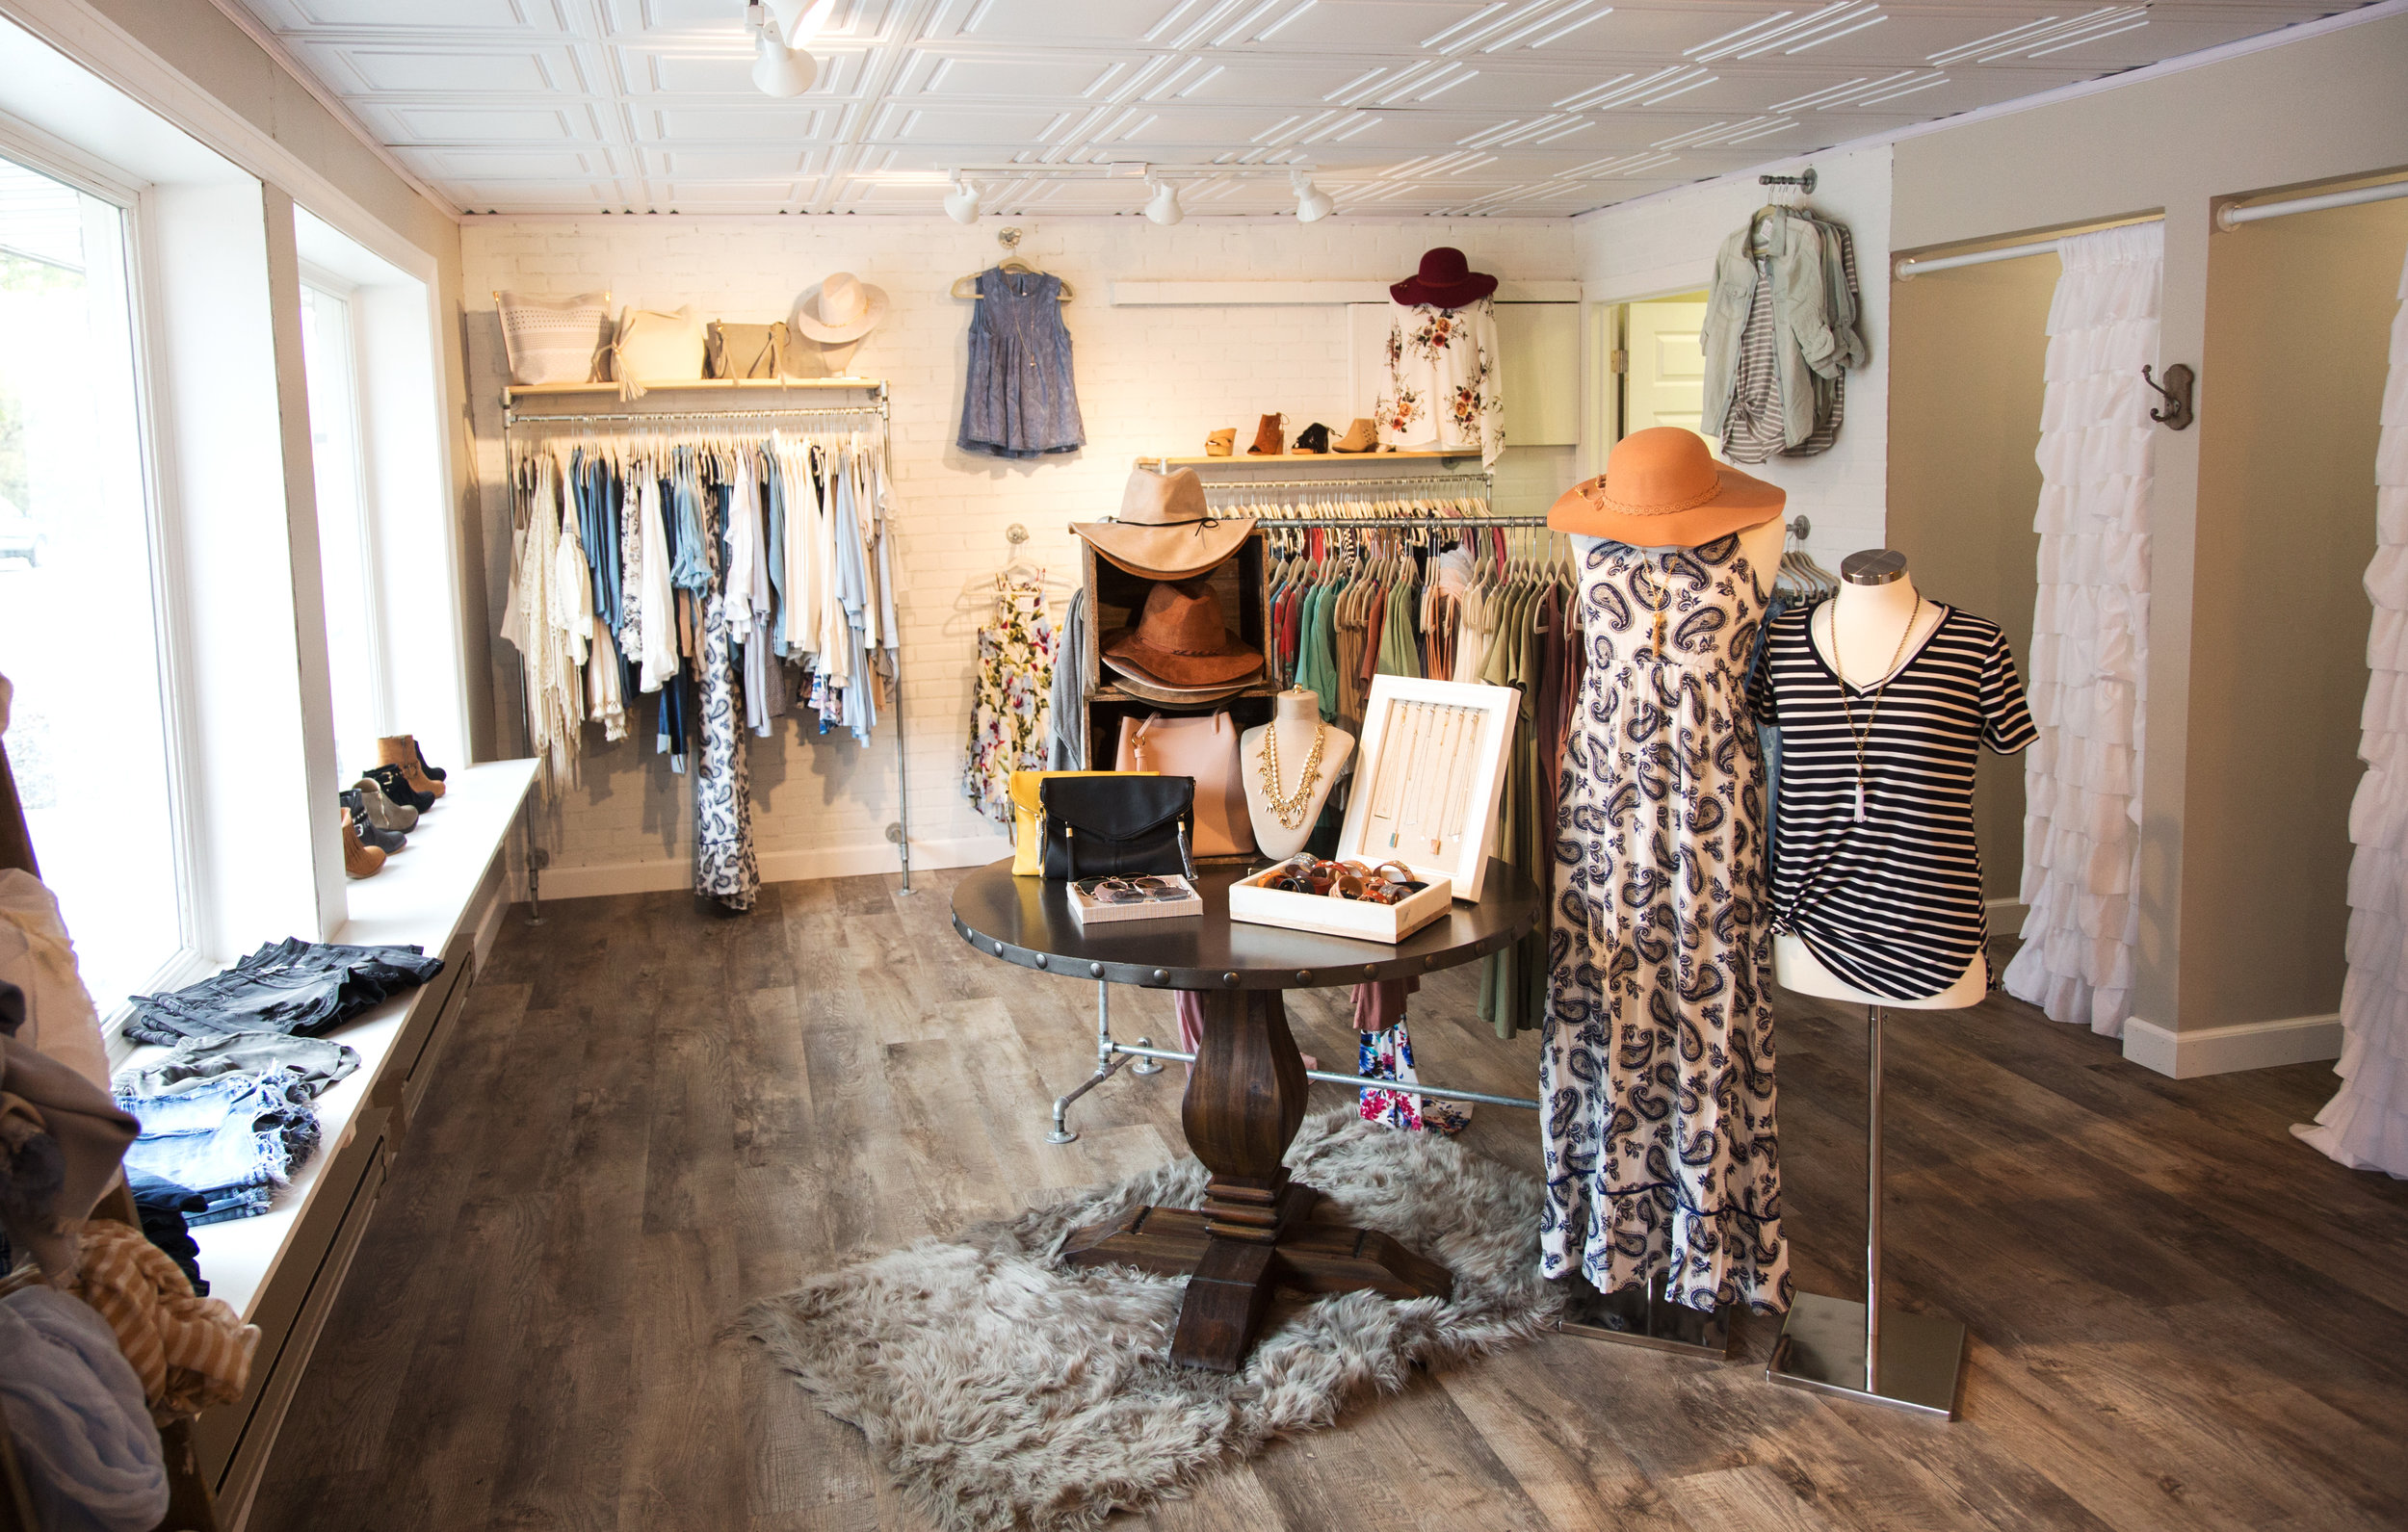 Our Shop - 12624 Fremont Ave.Zimmerman, MN 55398- - -Open the 1st and 3rd weekend of every month.Thursday - Saturday ||Hours varyPlease visit our facebook page for current hours.